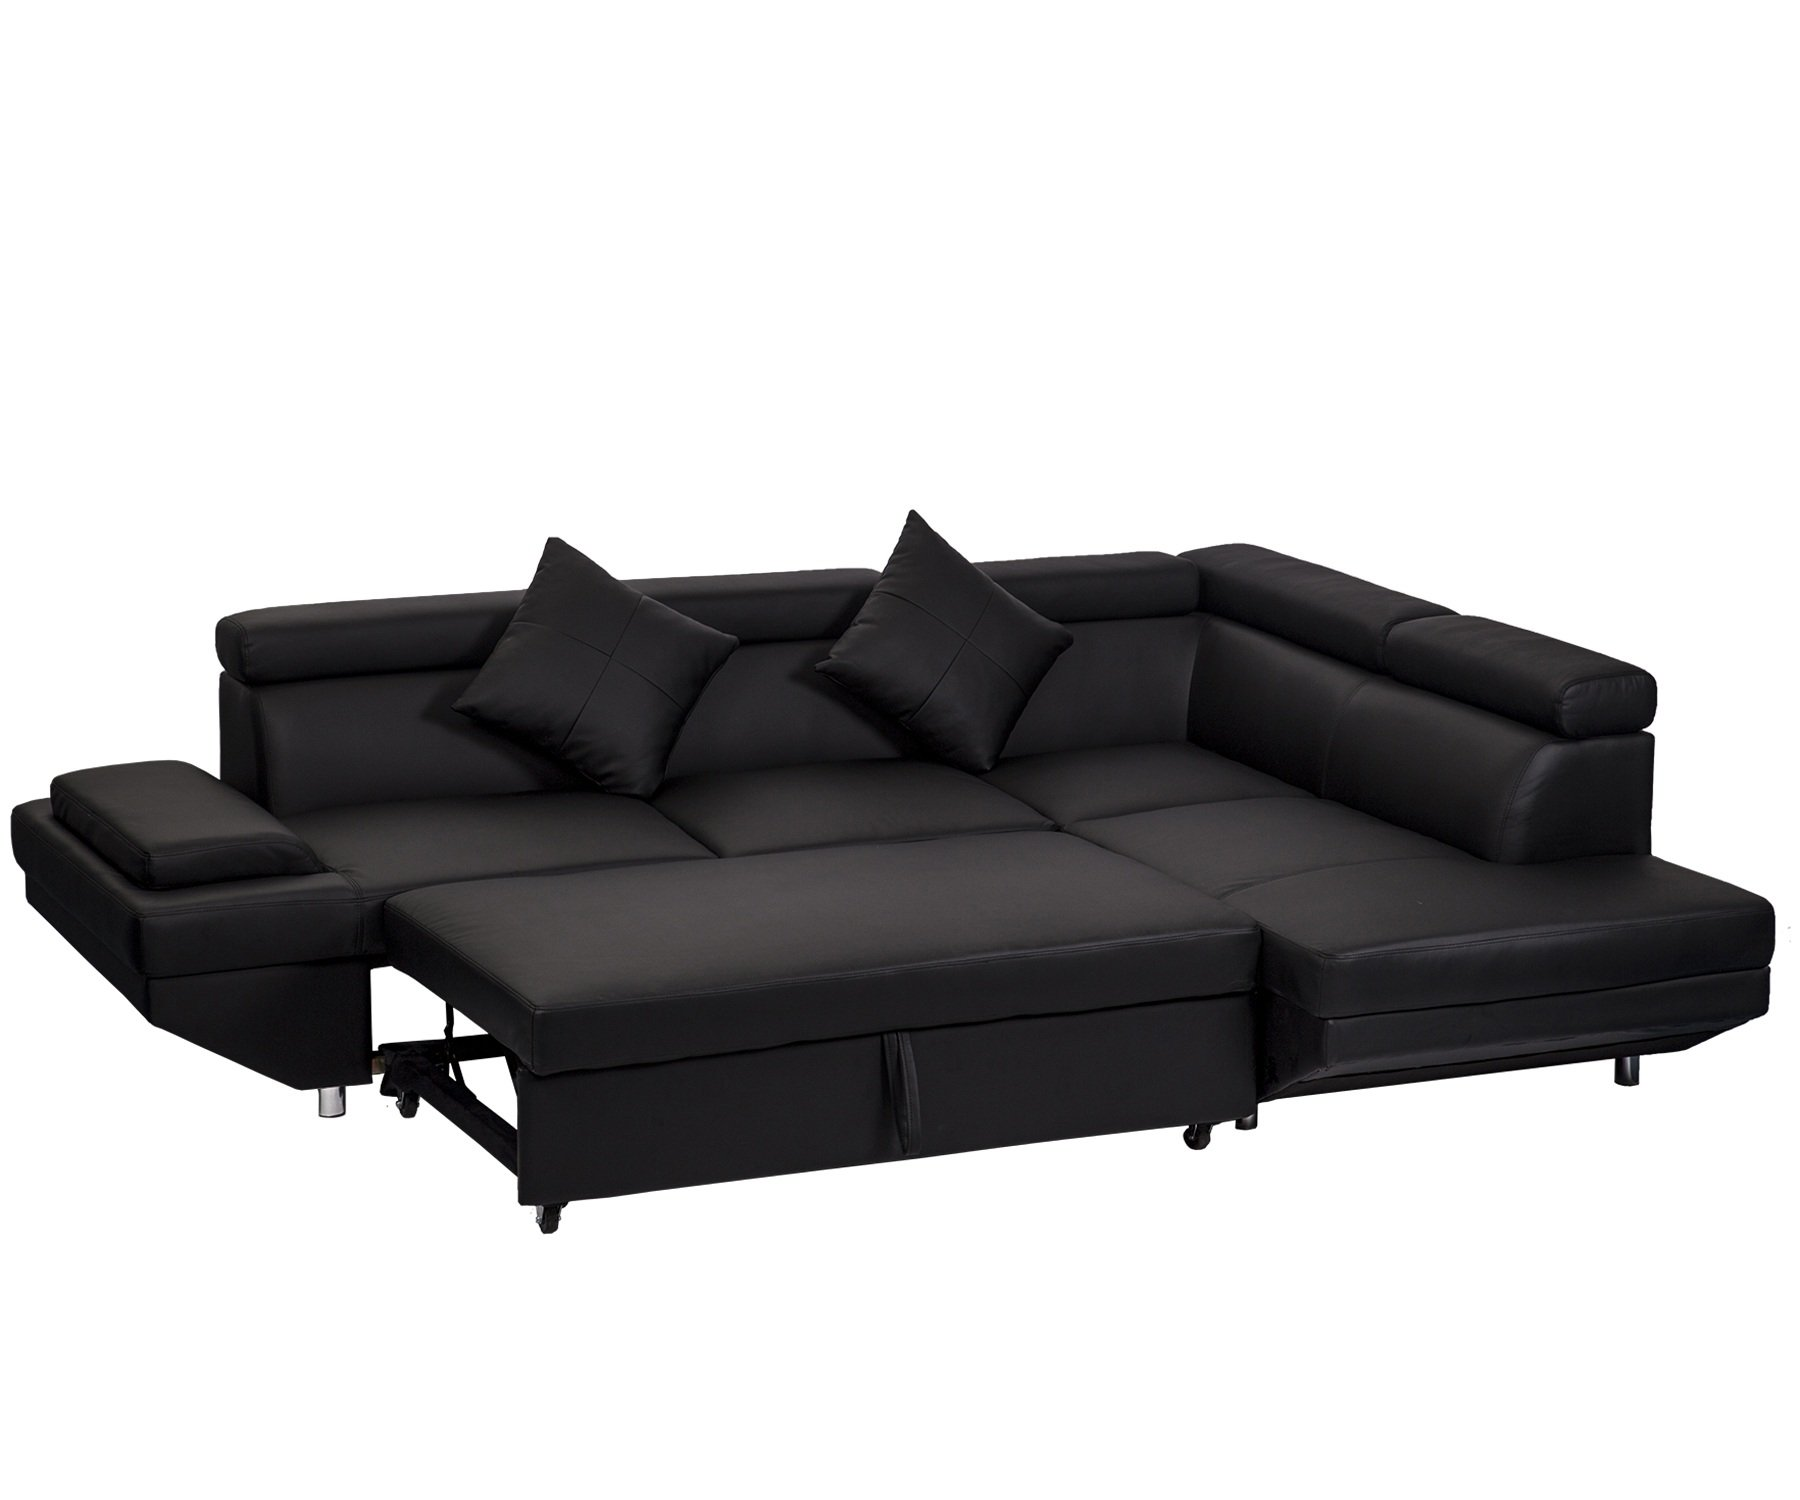 Details about Contemporary Black Leather Sectional Sleeper Futon Corner  Sofa Bed Living Room